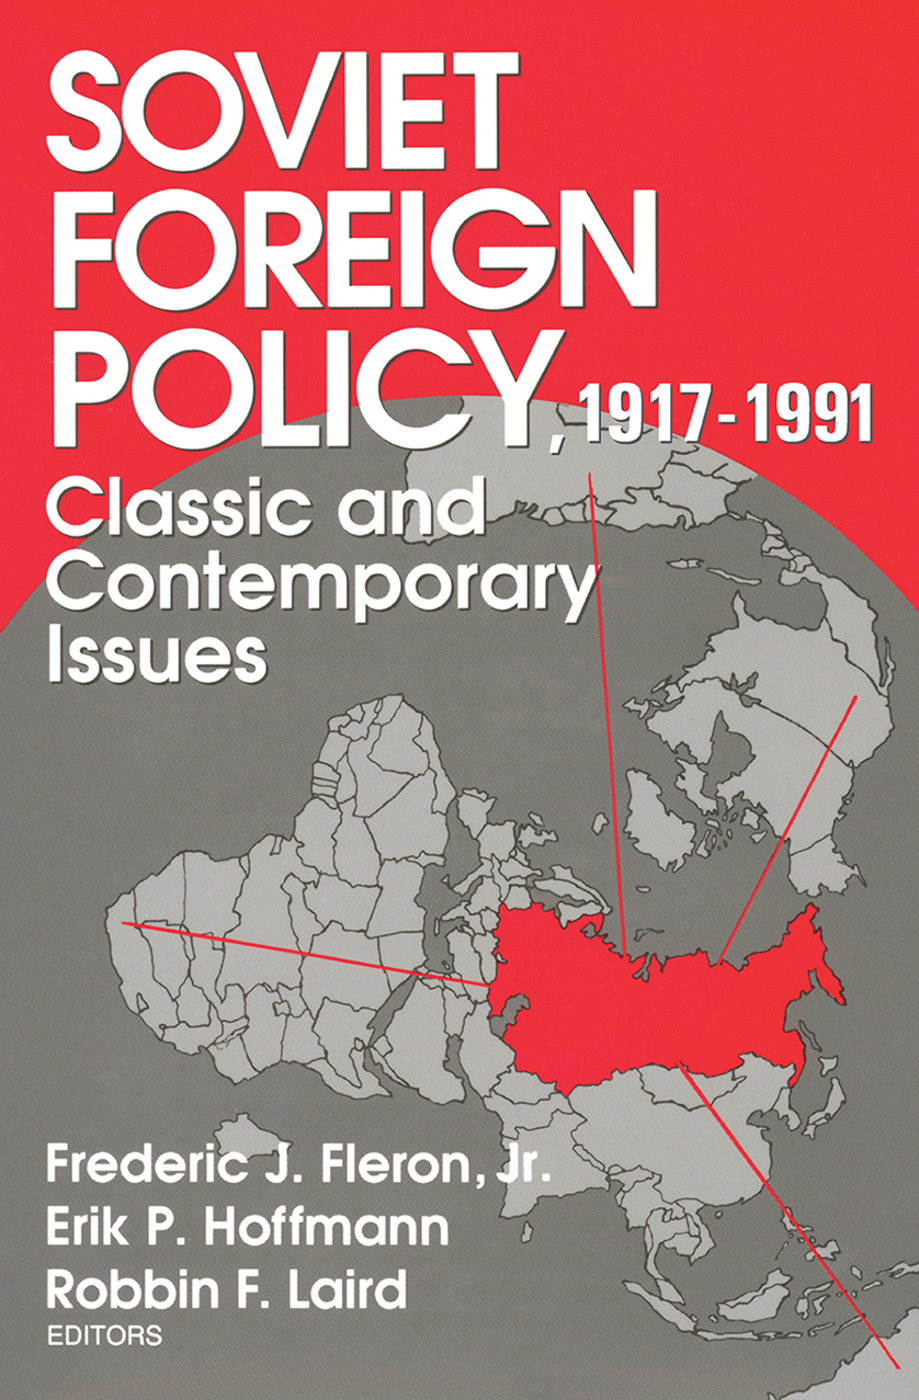 Soviet Foreign Policy 1917-1991: Classic and Contemporary Issues, 1st Edition (Paperback) book cover